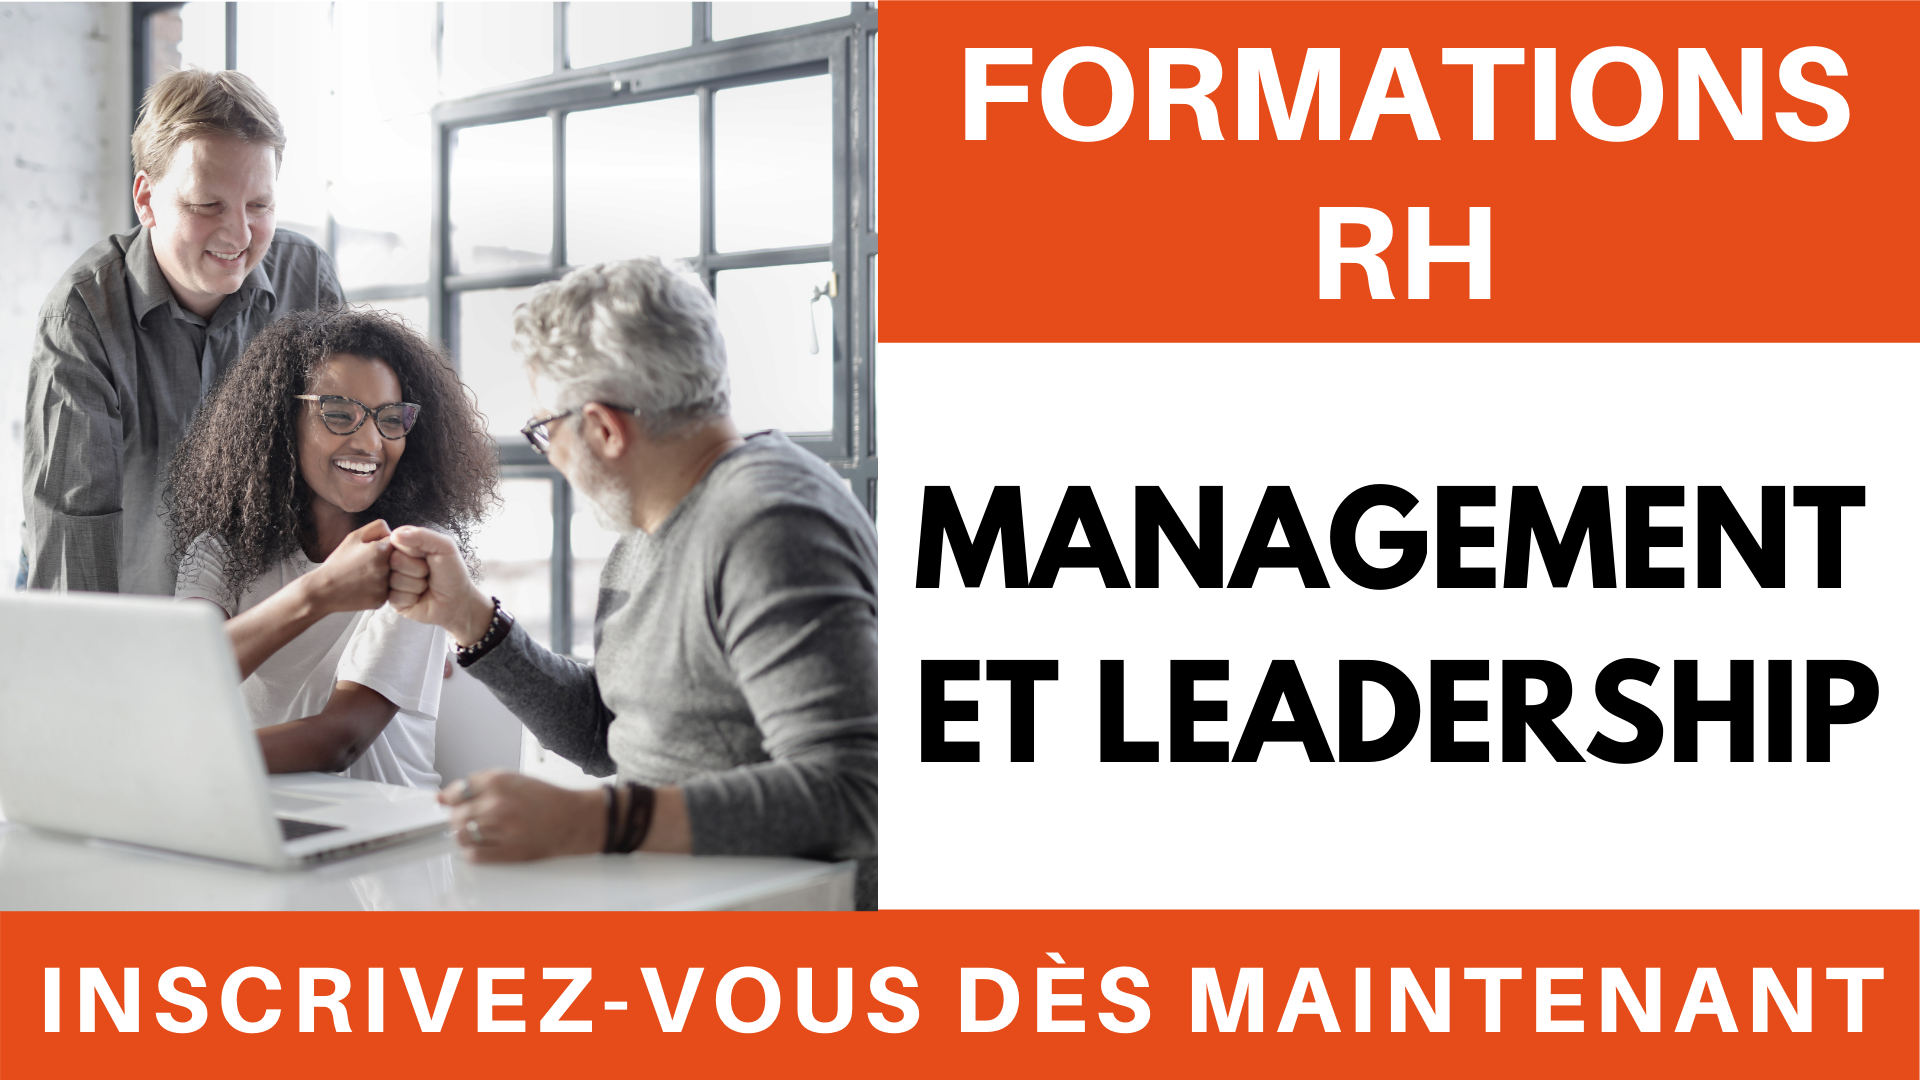 Formations RH - Management et leadership